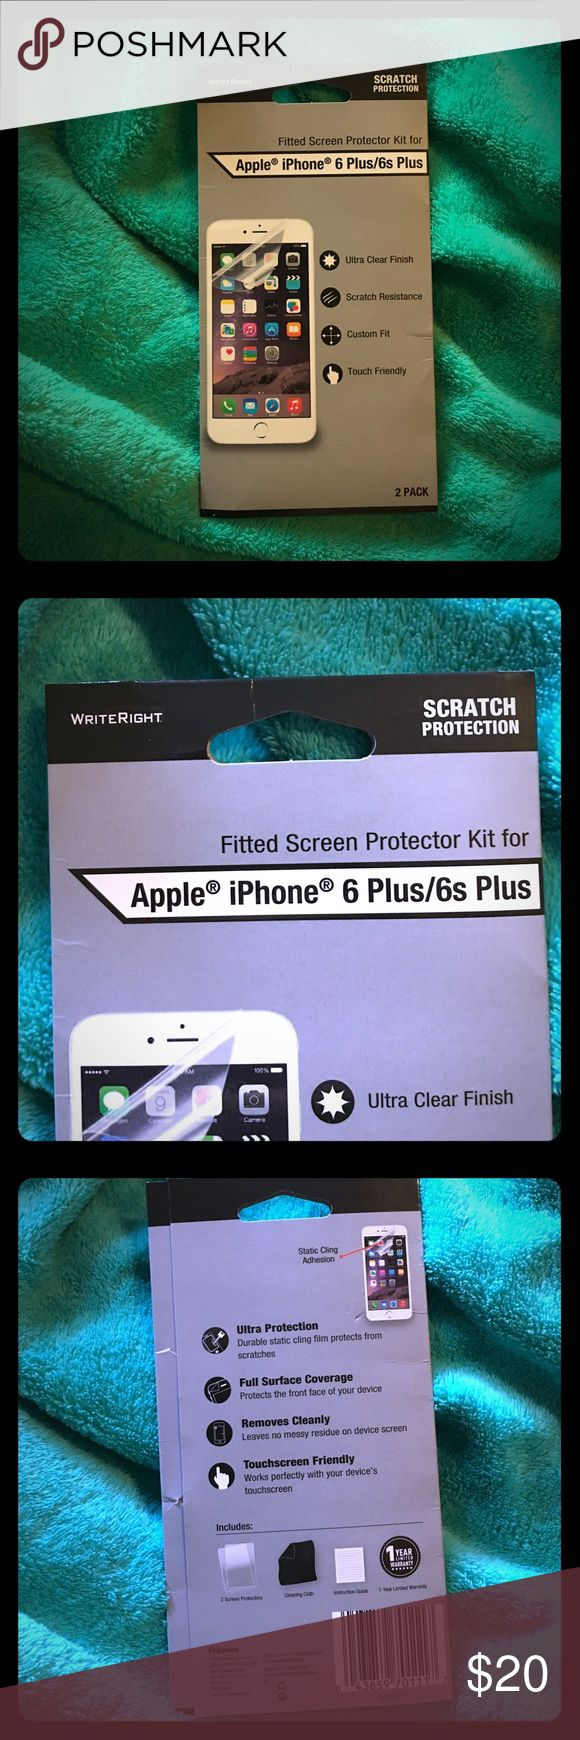 ✨IPhone 6Plus/6sPlus Screen Protector Kit✨ ✨WriteRight Apple iPhone 📱 6Plus/6sPlus Screen Protector Kit✨ 2 pack ✨Never opened✨ Still sealed✨Ultra clear finish✨Scratch Resisant✨Custom fit to iPhone 6Plus generation✨ Add to a bundle🛍 Always open to offers🤗 Accessories